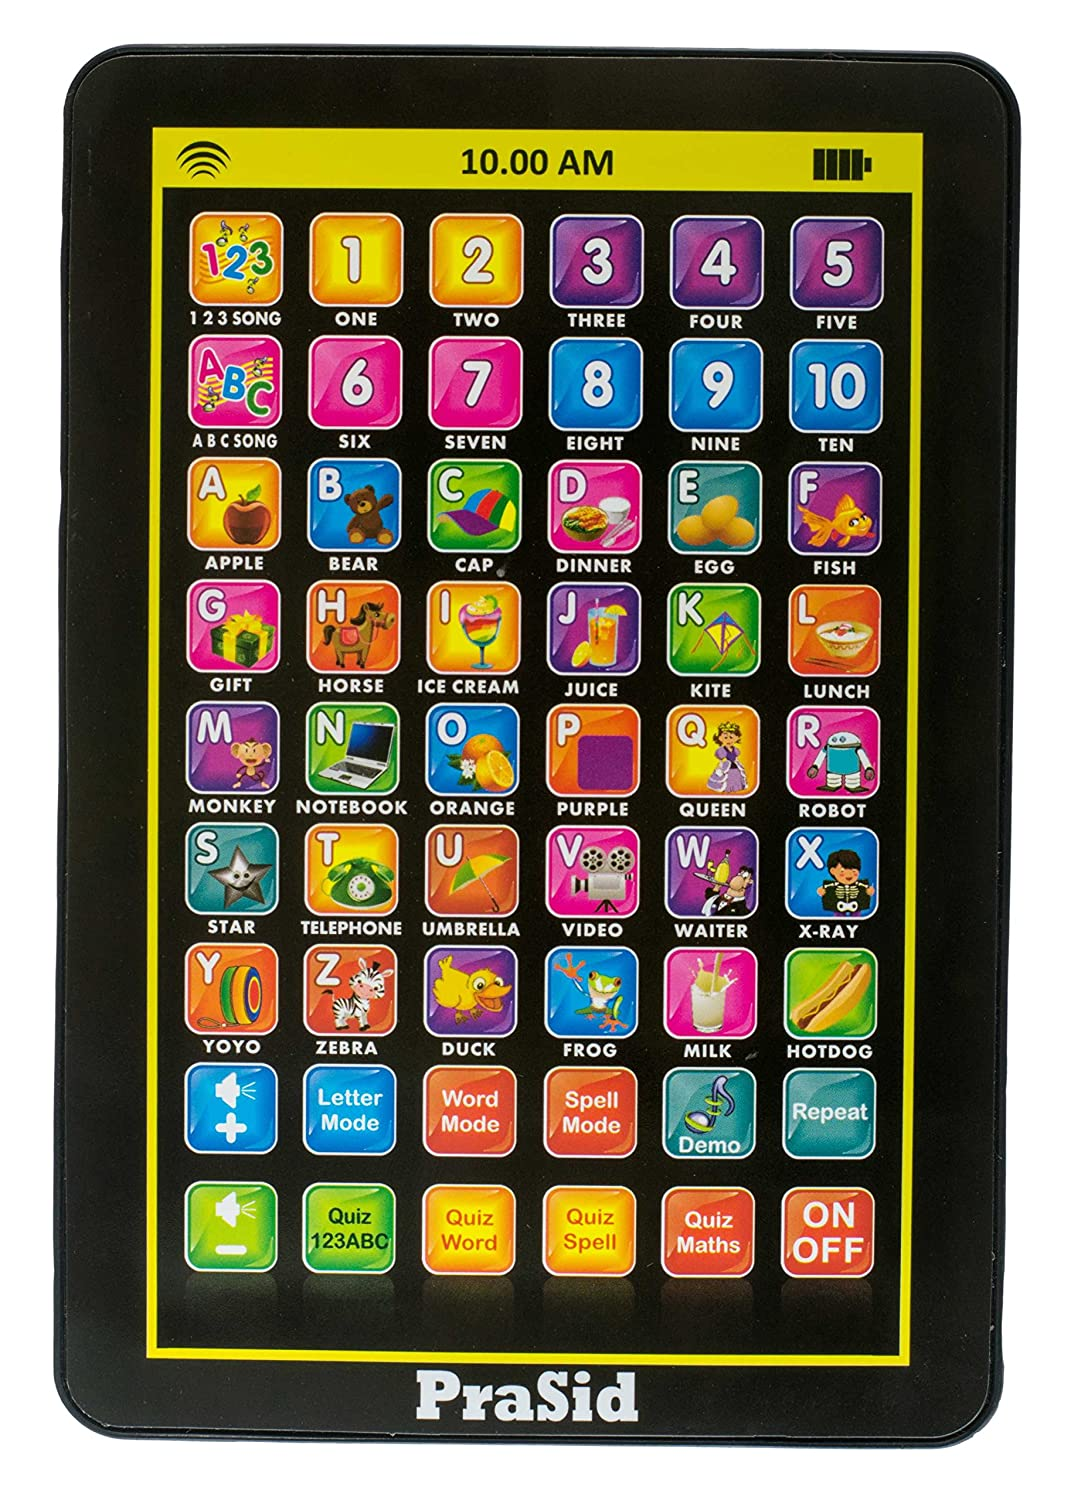 Prasid My Pad Mini English Learning Tablet for Kids By Amazon @ Rs.259